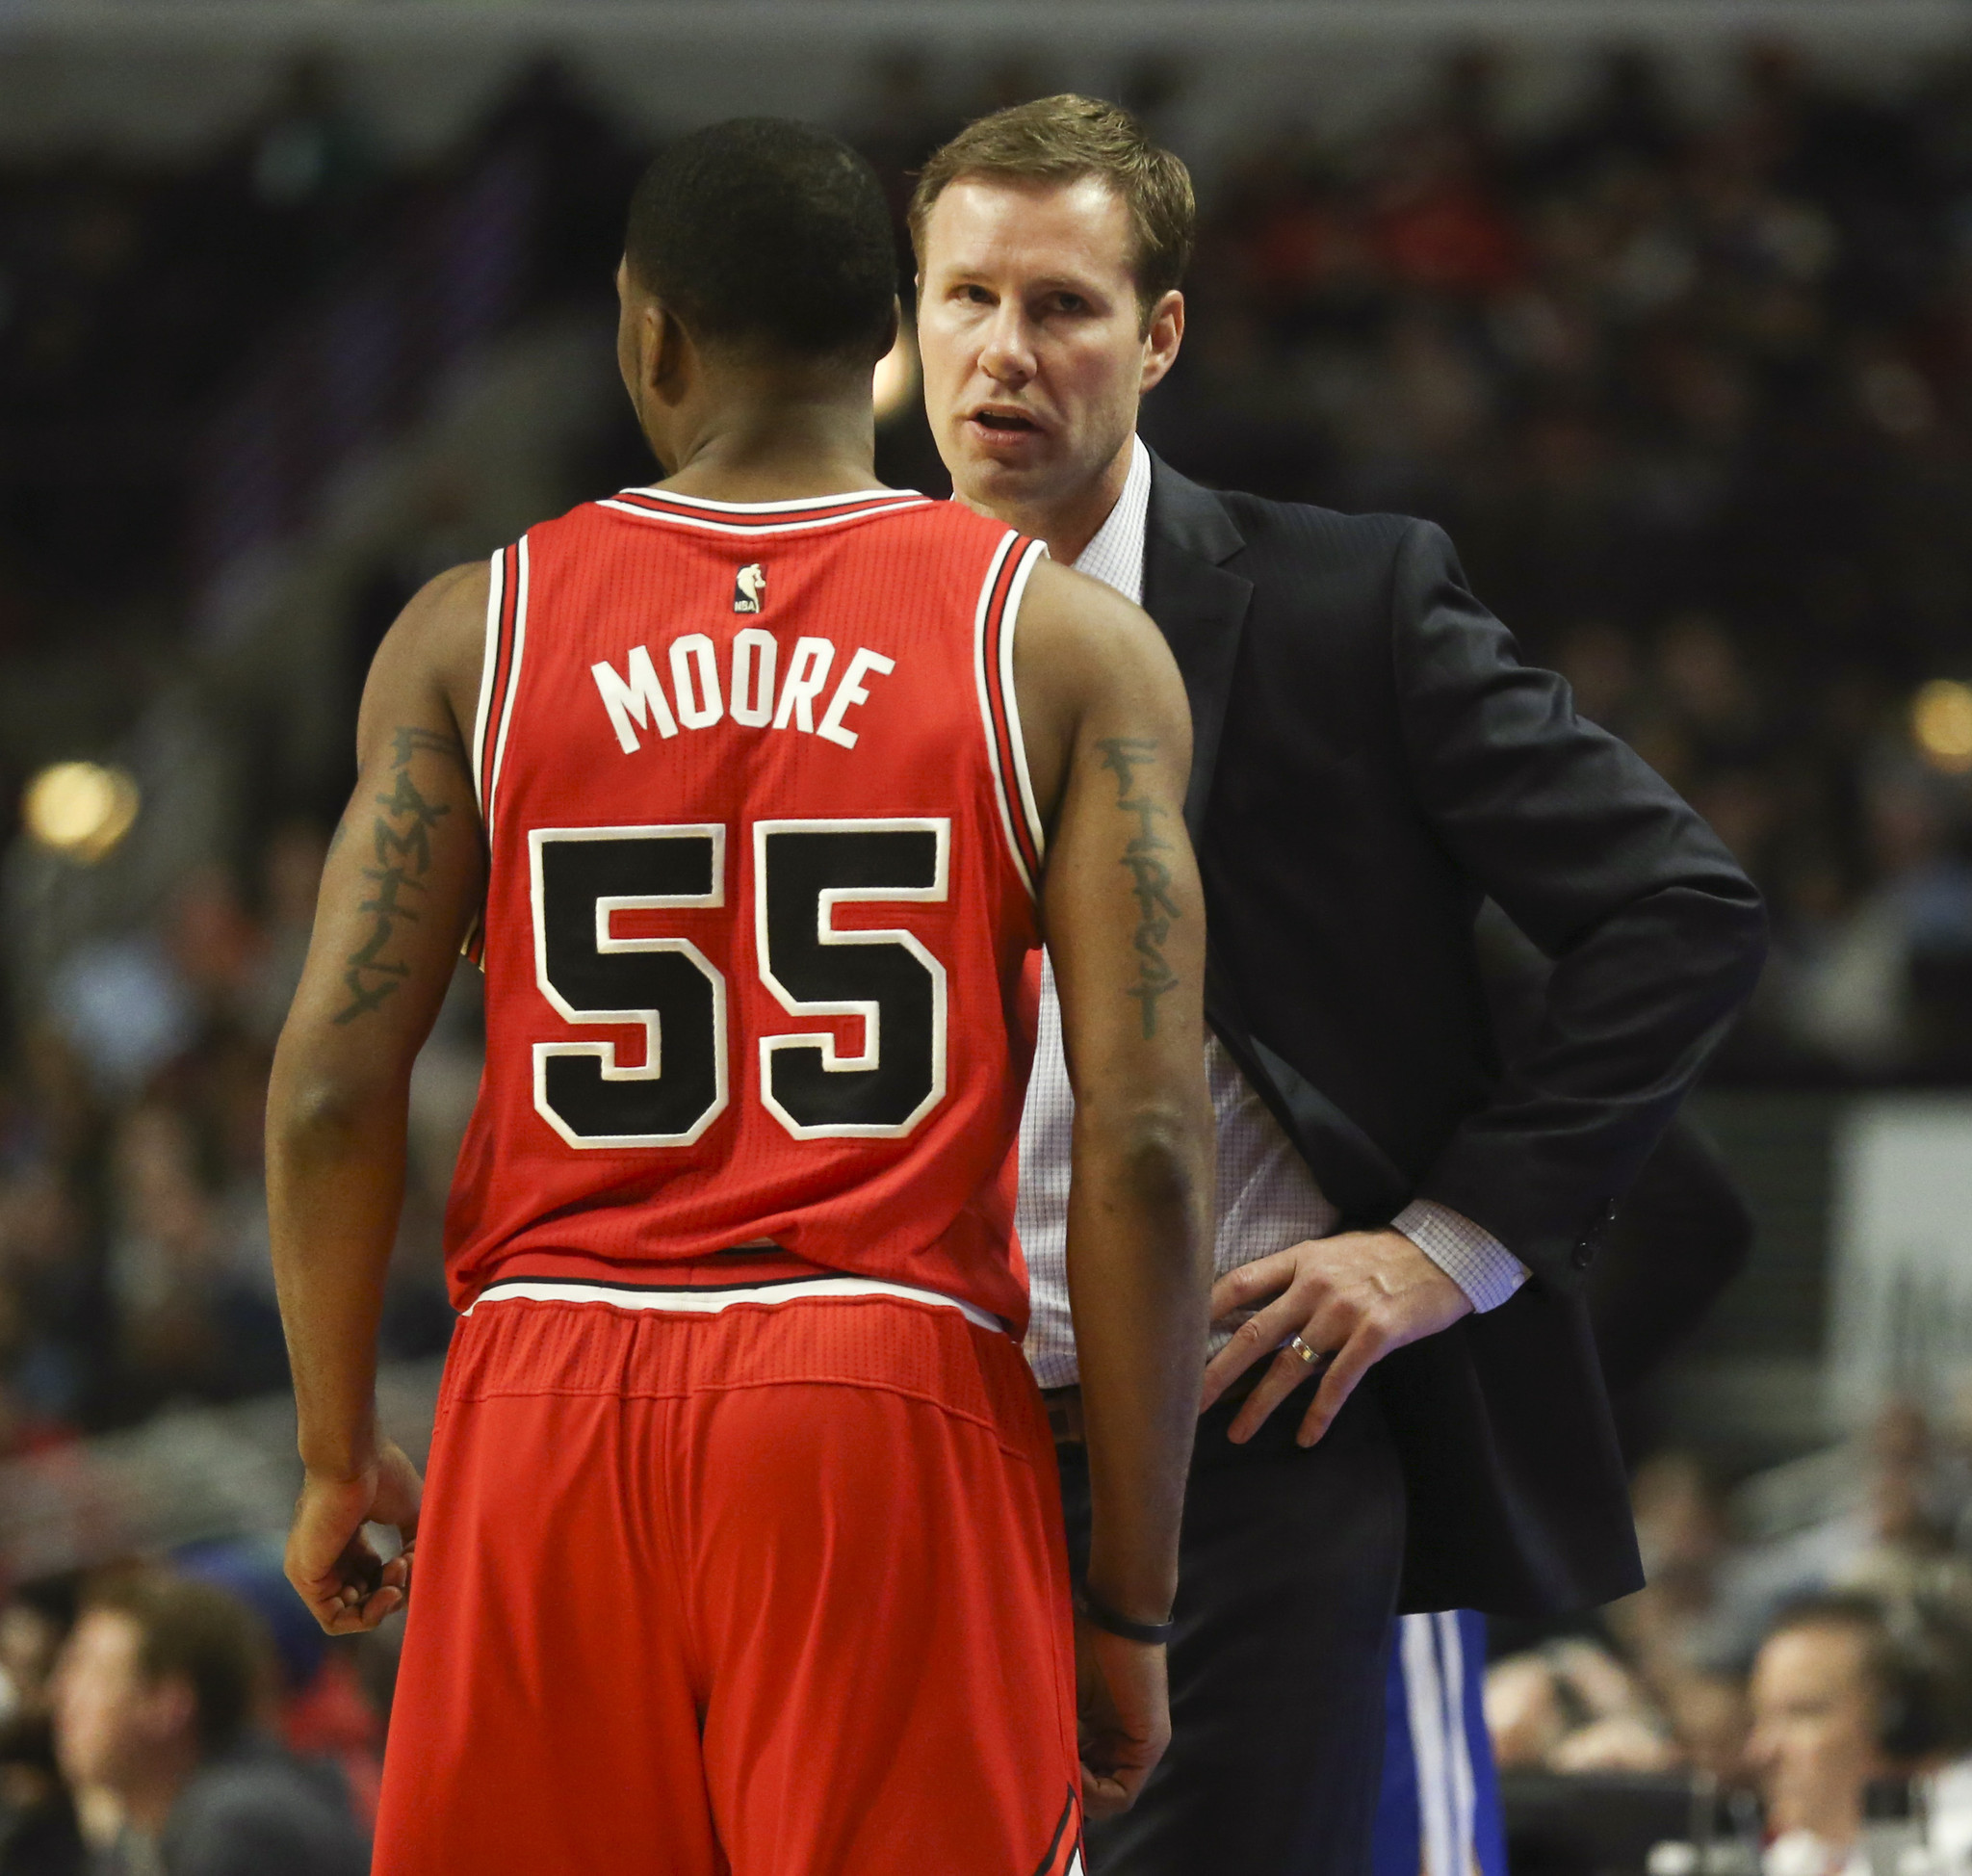 It's beyond me why Fred Hoiberg gets bulk of blame for up-and-down Bulls